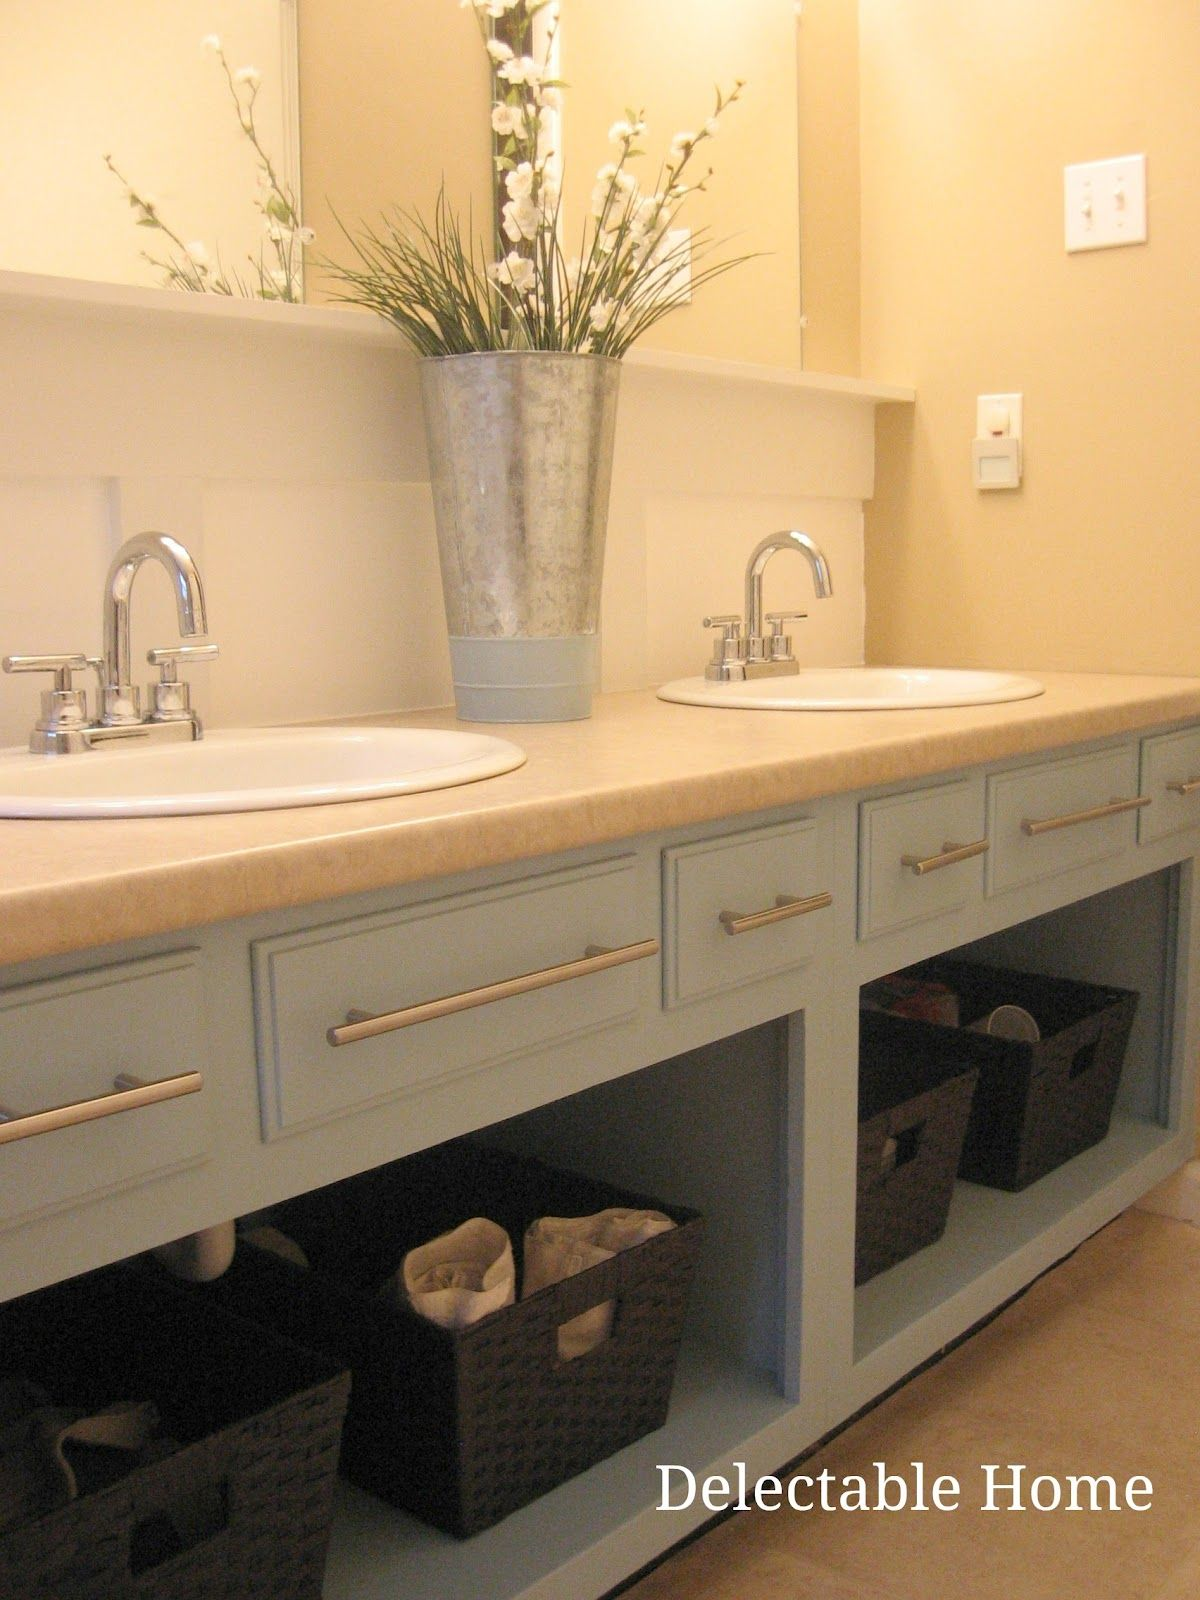 The Delectable Home Bathroom Cabinets Diy Turquoise Bathroom Diy Bathroom Vanity